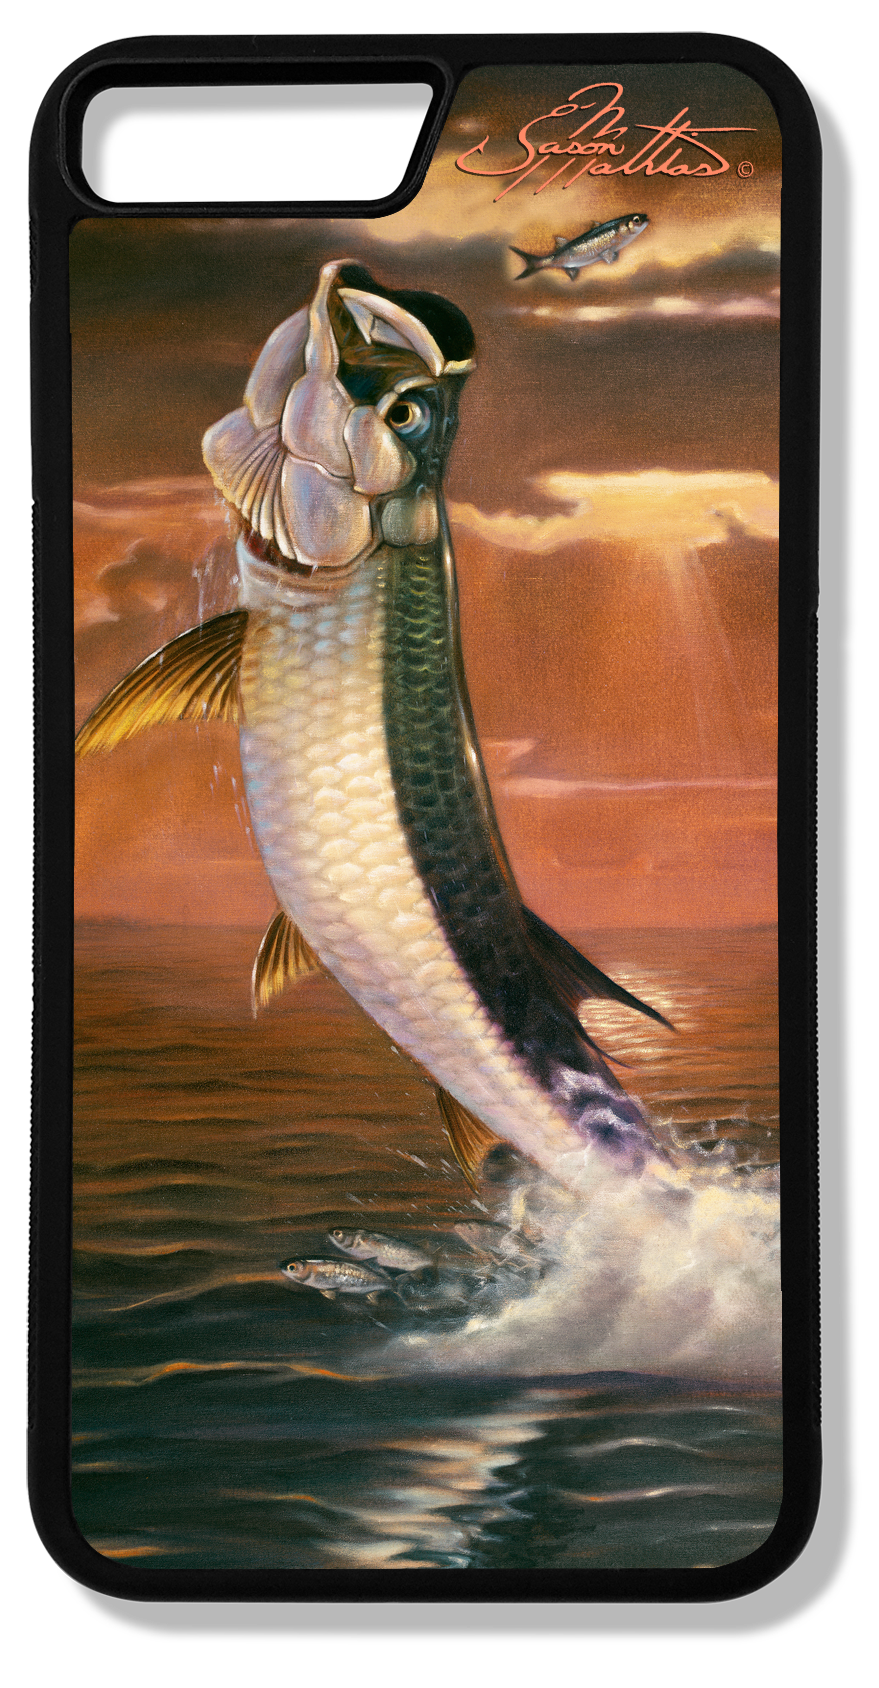 iphone-8-plus-case-tarpon-jumping-jason-mathias-art.png